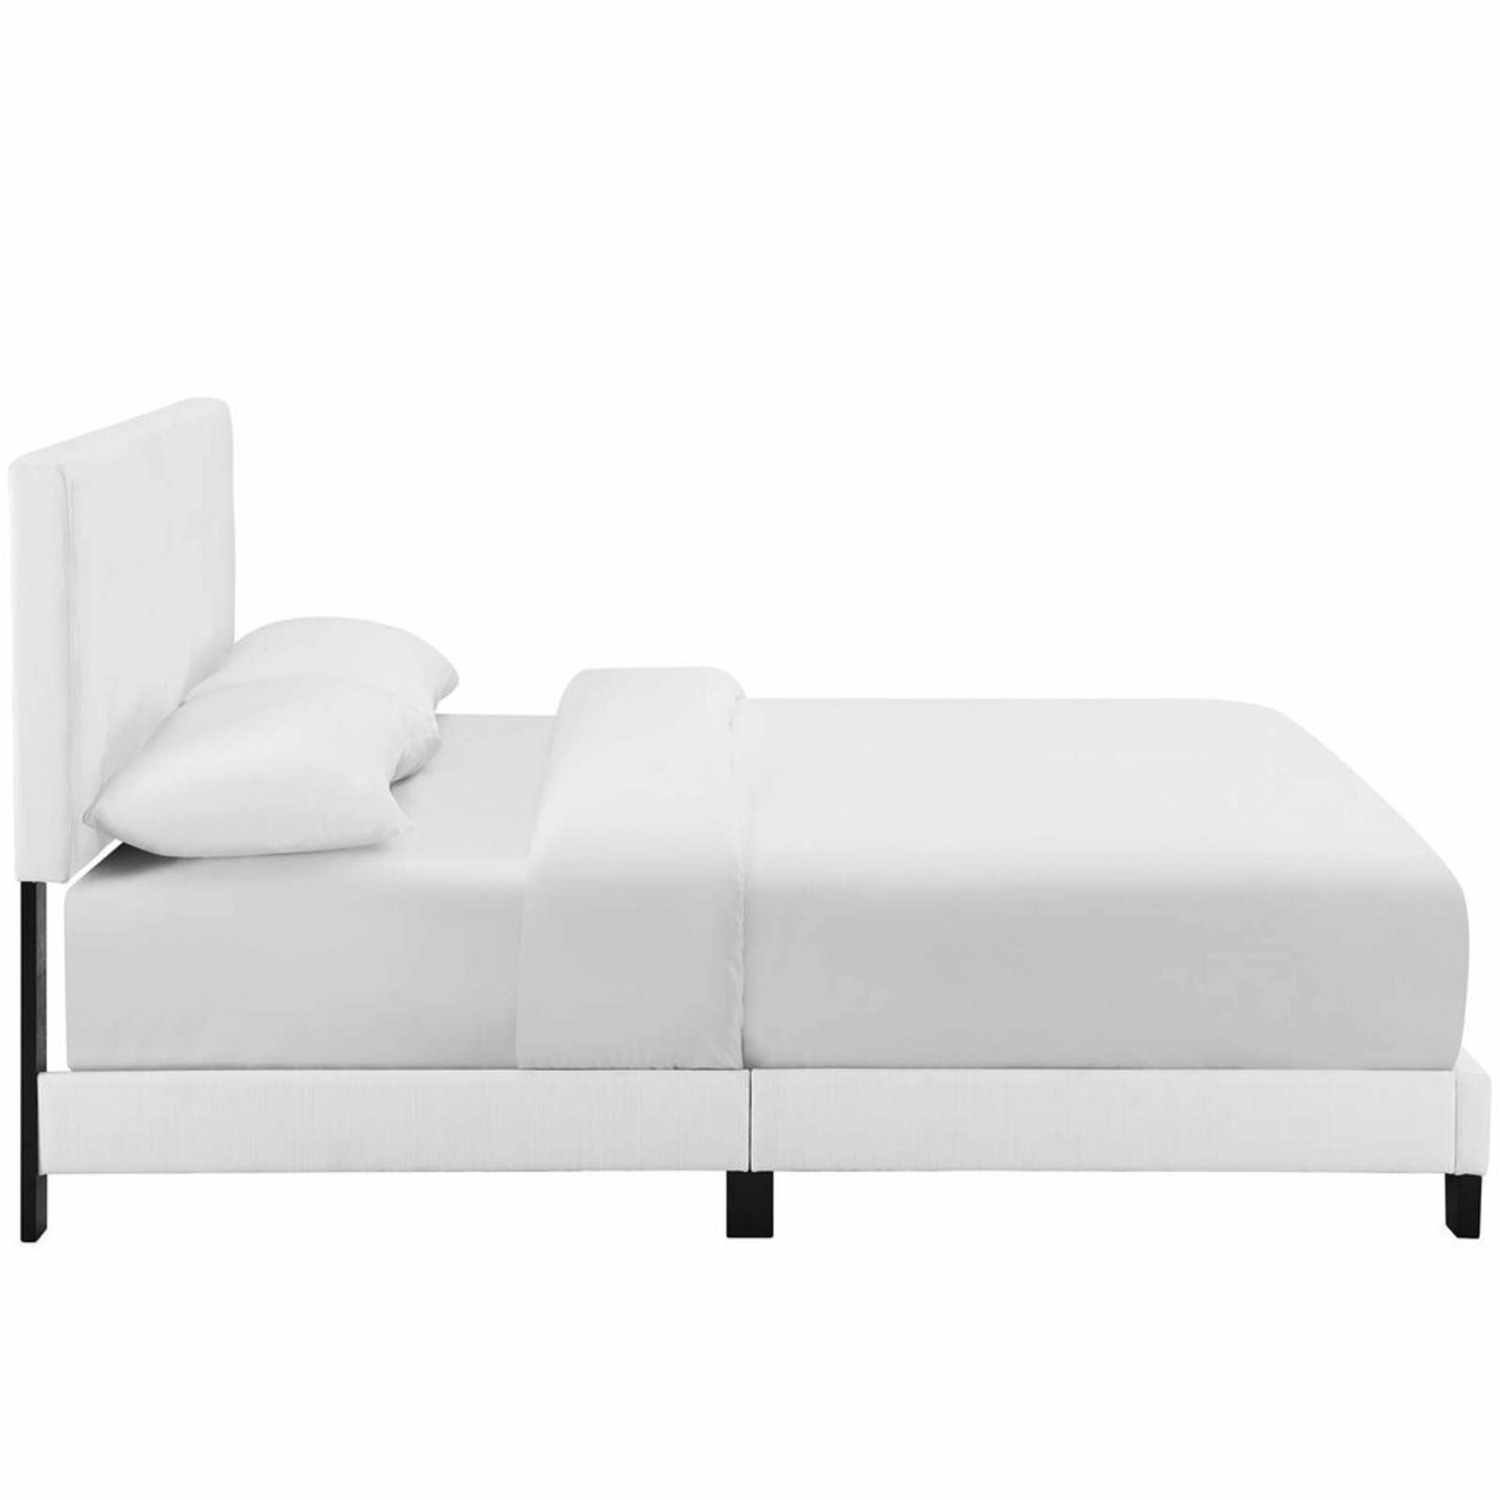 Contemporary Style Full Bed In White Upholstery - image-2